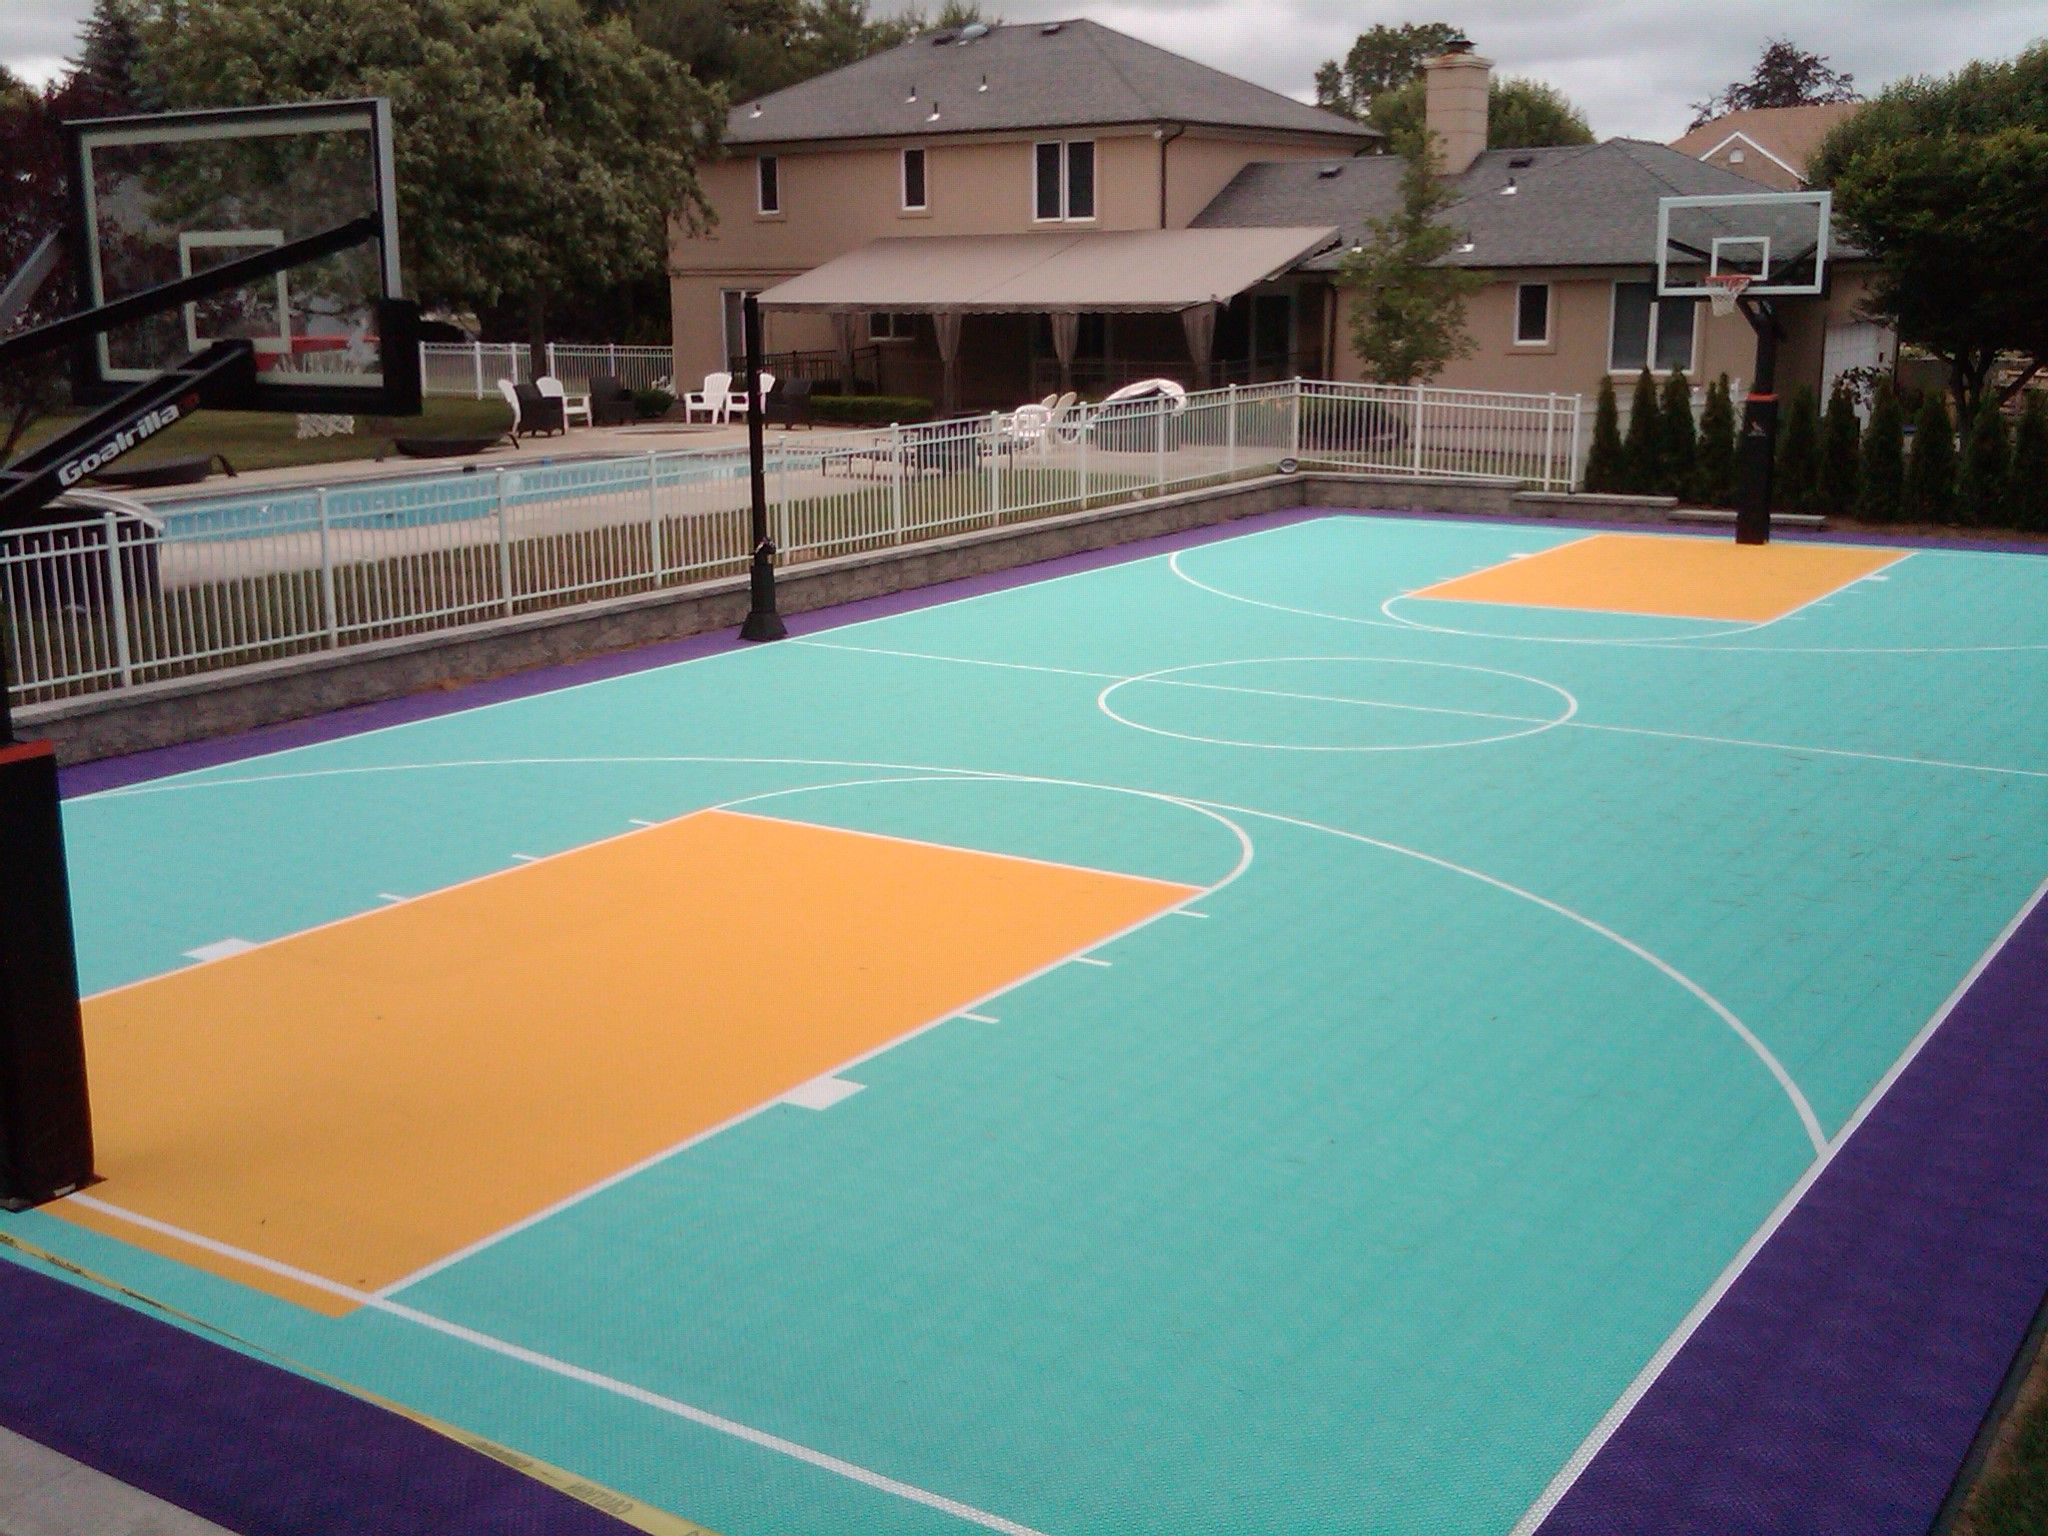 Full Basketball Court Along Side A Pool In Nj Basketball Court Backyard Backyard Basketball Basketball Court